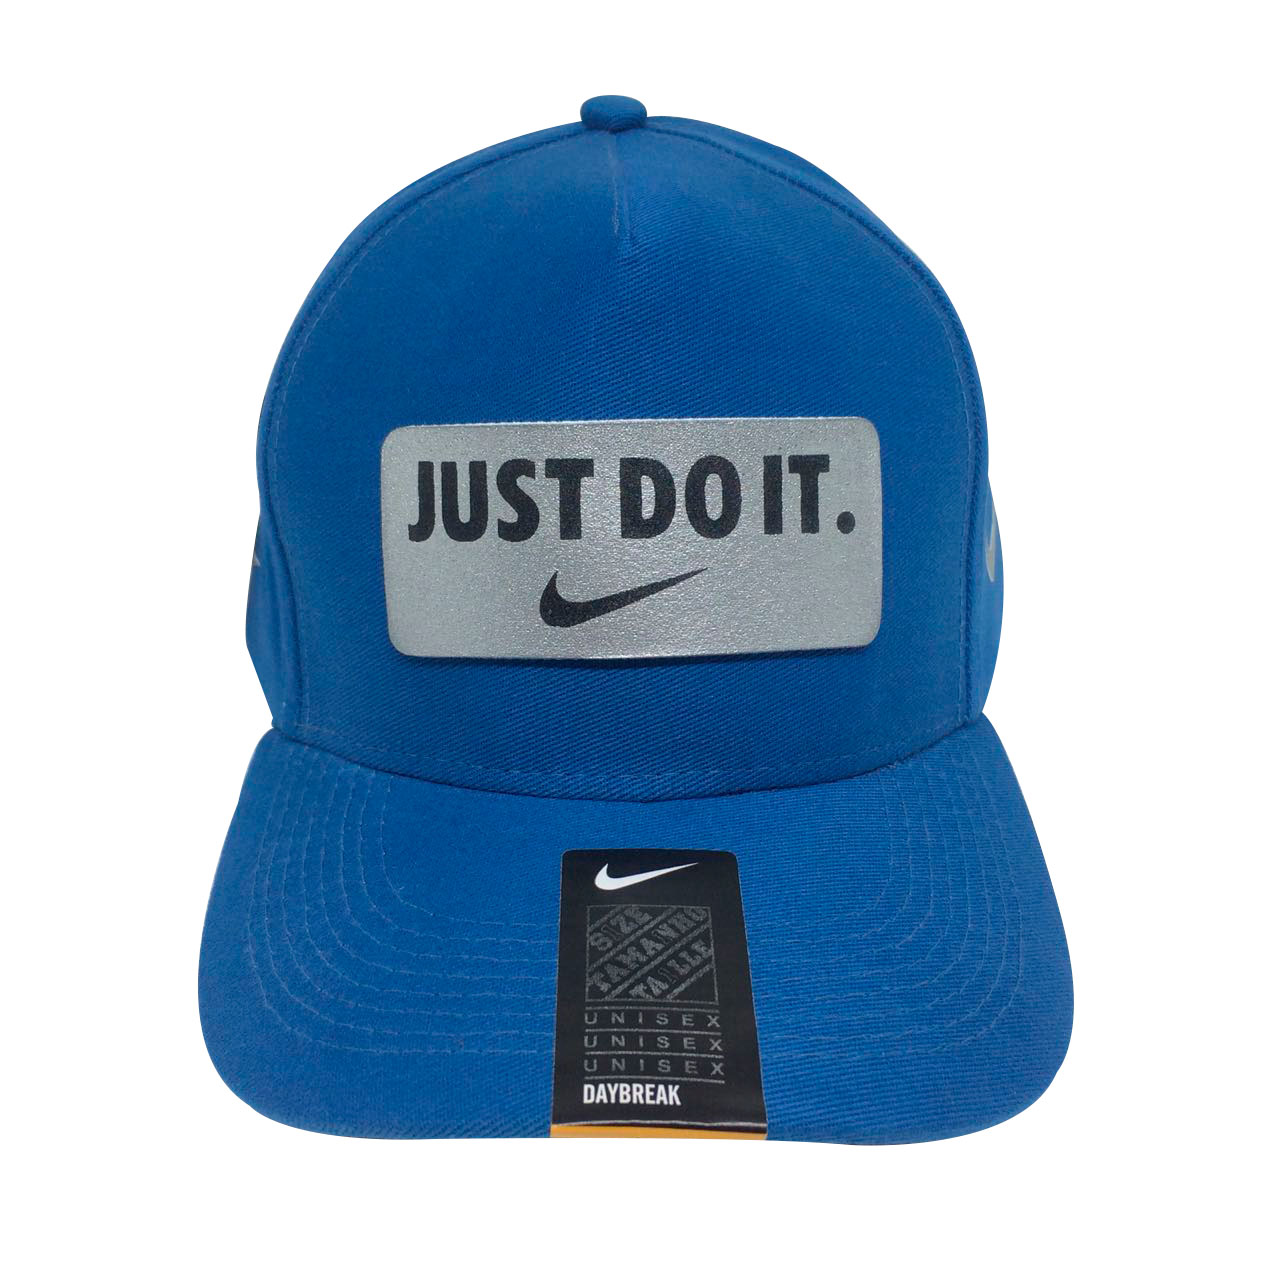 4bbf0c6df317d Bone Nike Just do It azul – Sanfer Acessórios